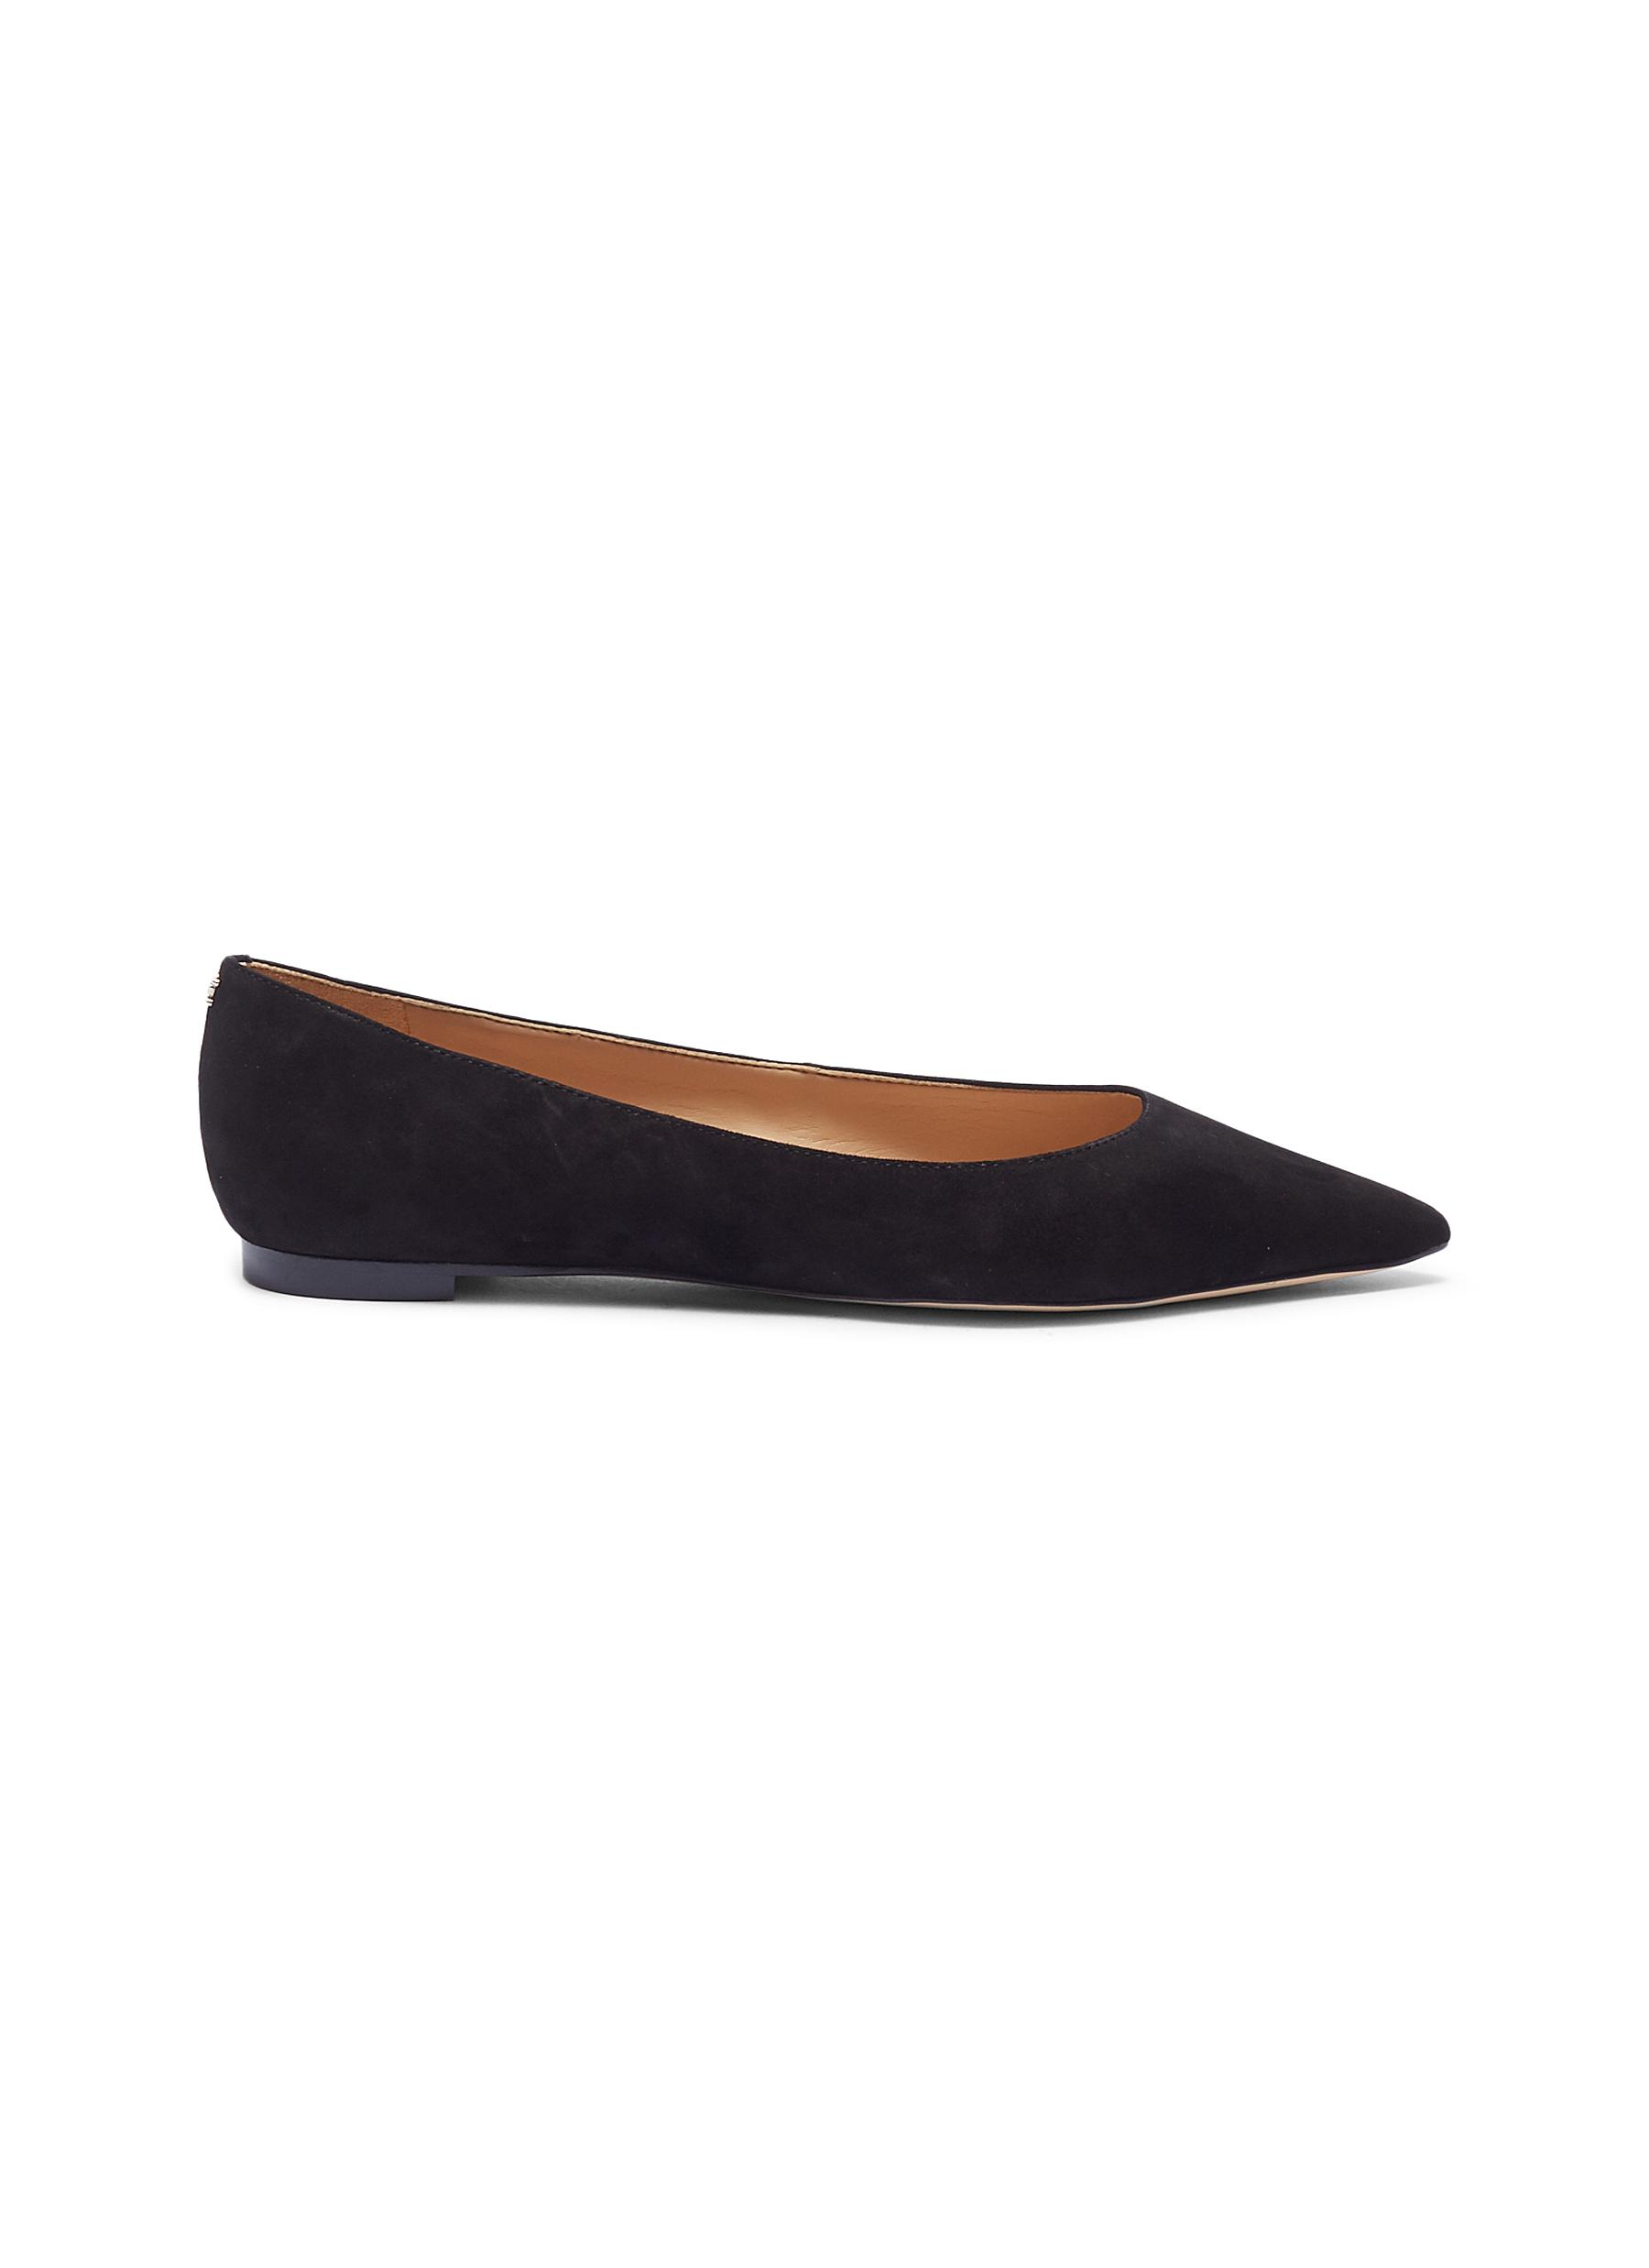 Sally suede skimmer flats by Sam Edelman